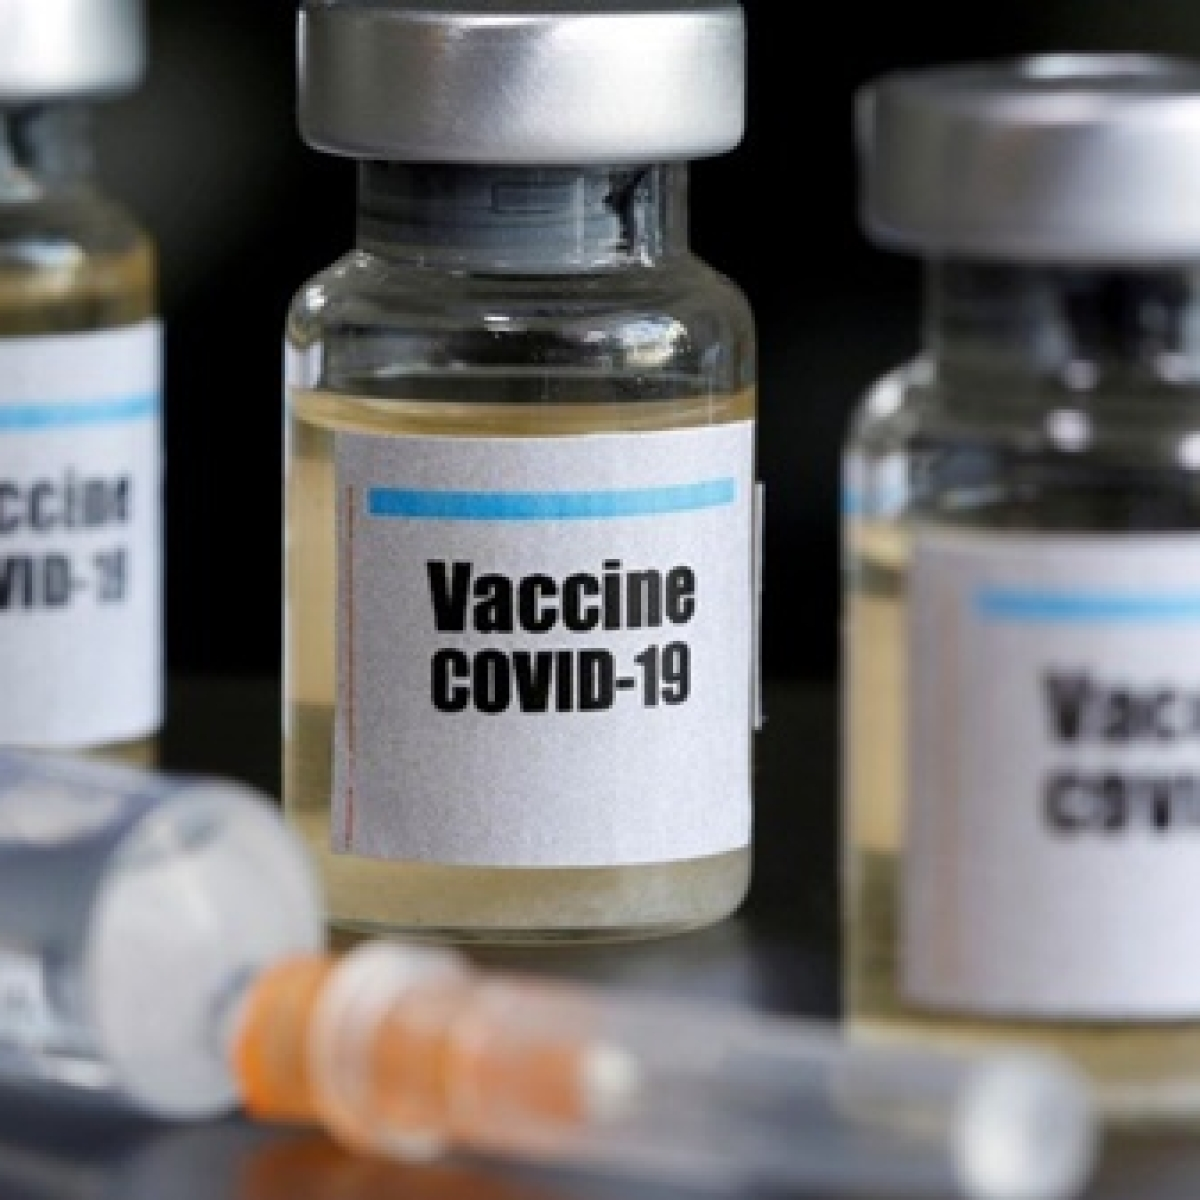 Latest coronavirus vaccine update: Ministry says vaccine unlikely before 2021, backtracks later